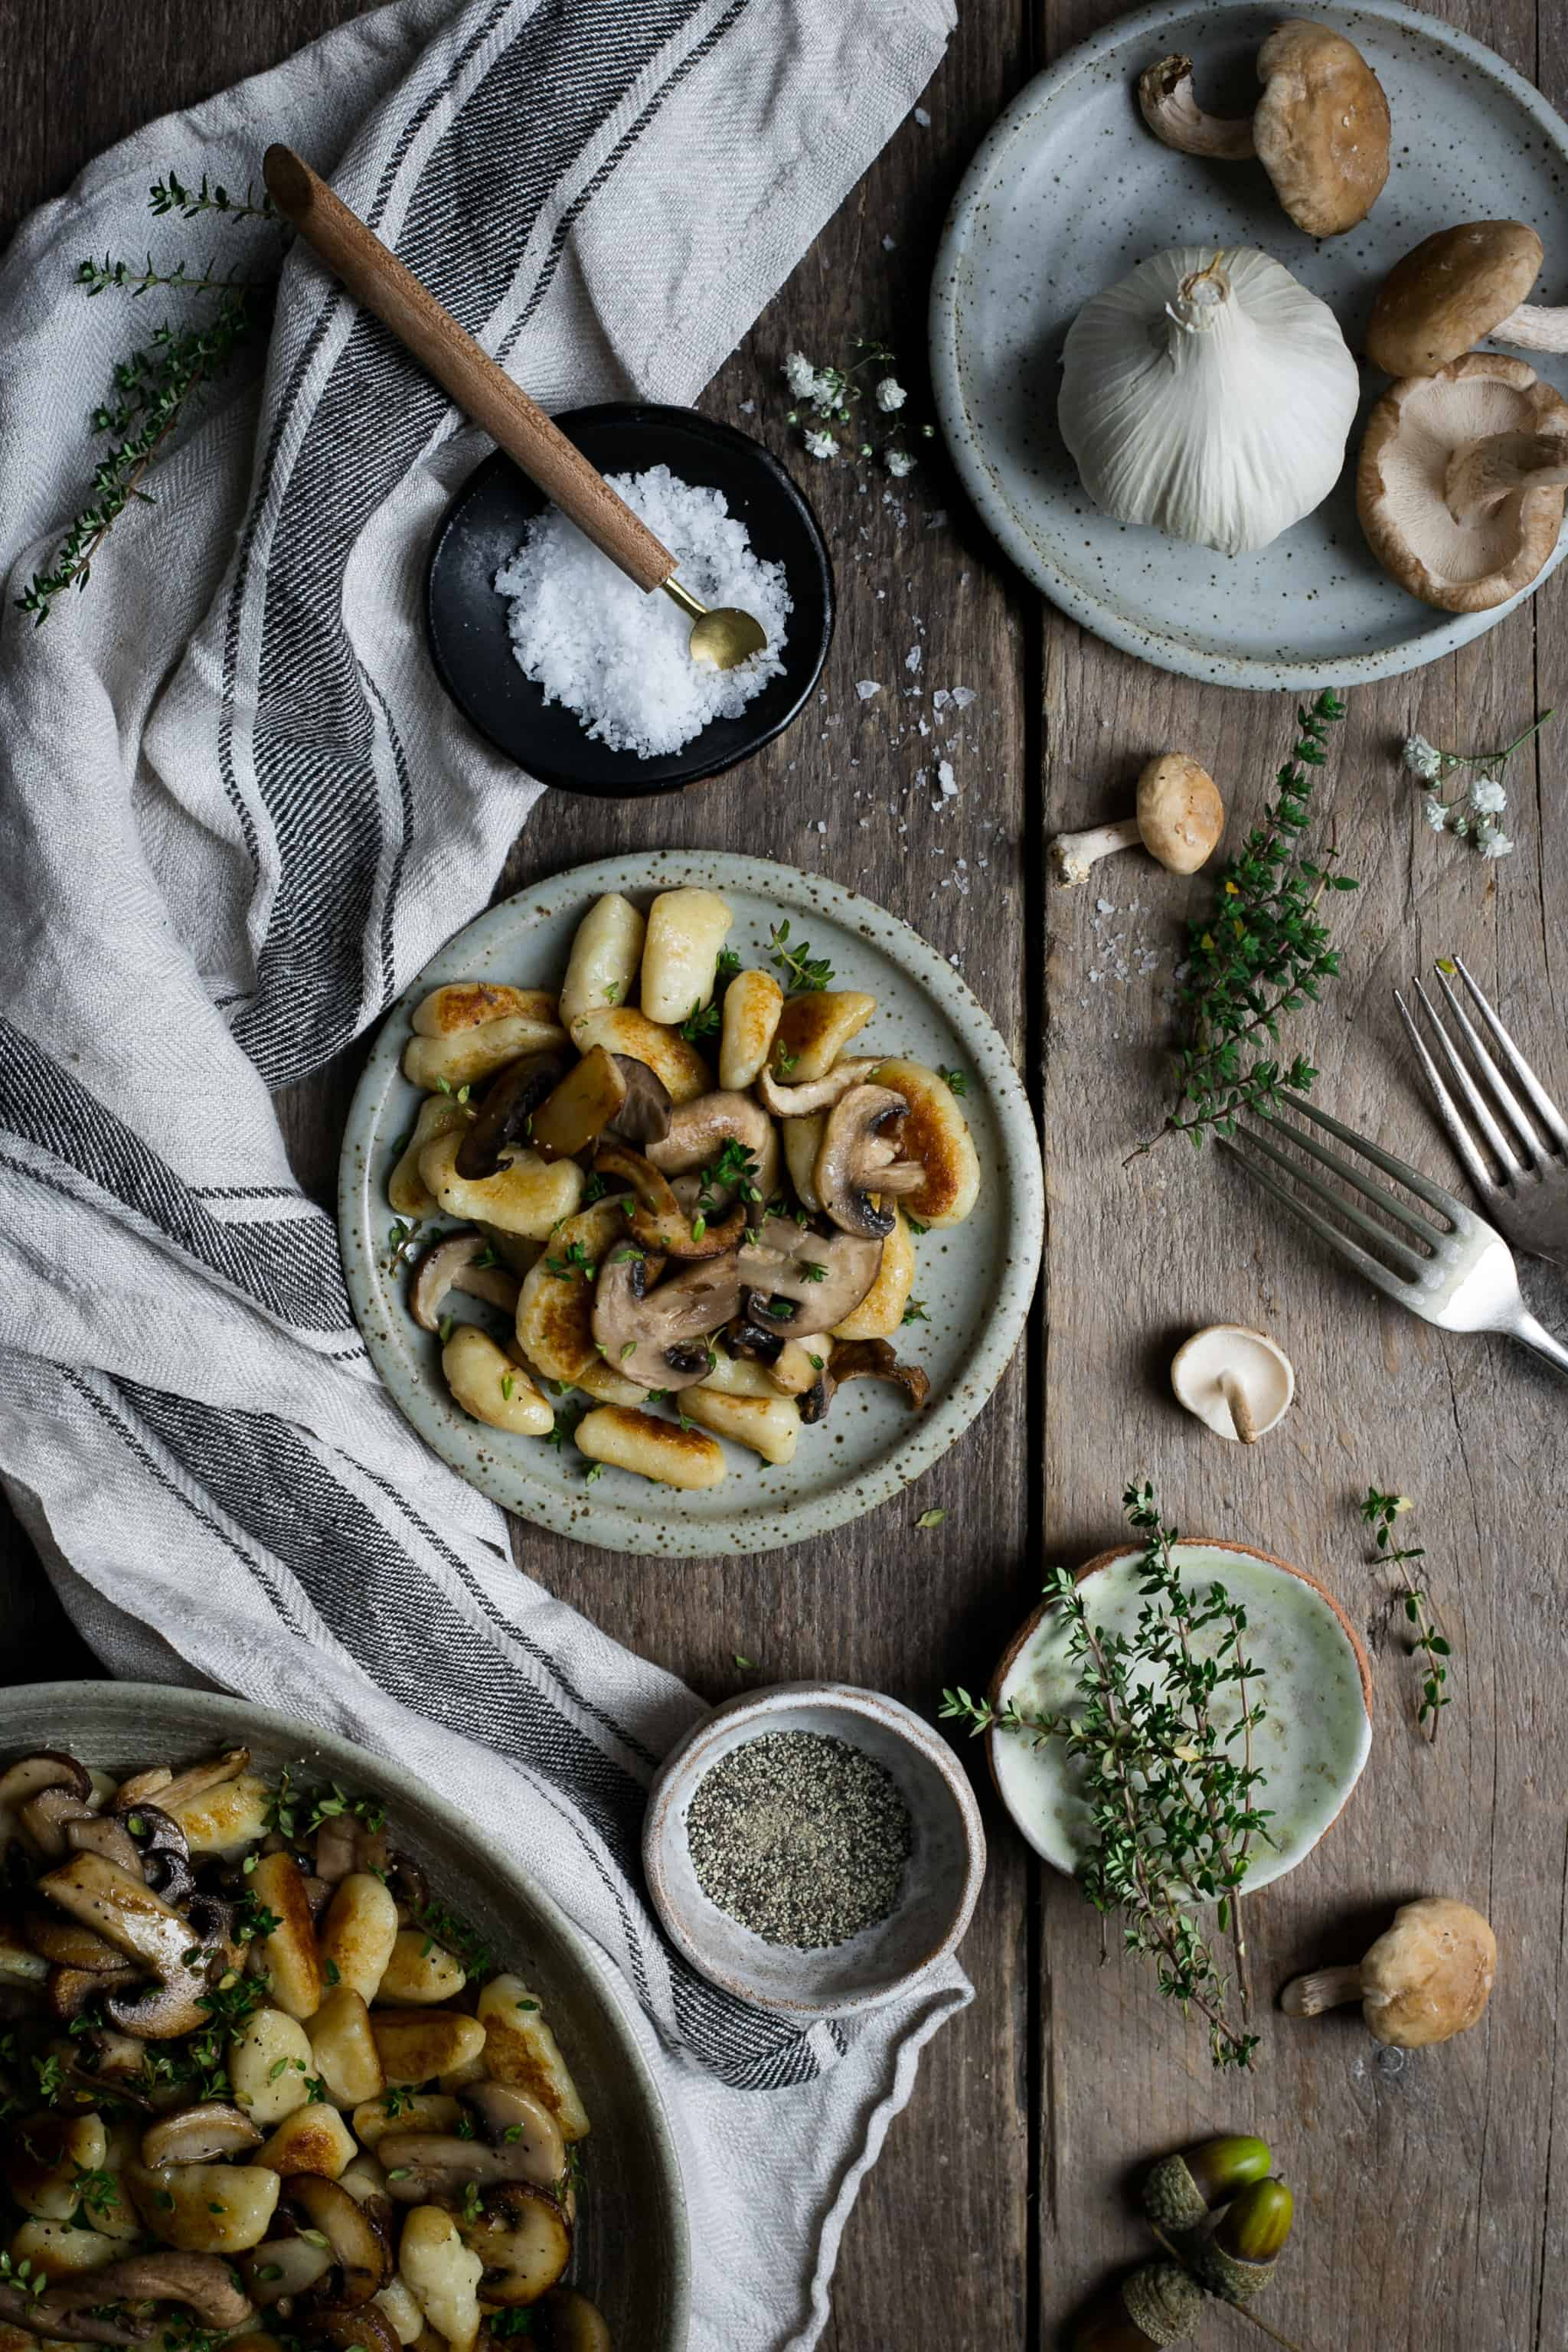 Mushroom gnocchi with fresh thyme | via @annabanana.co